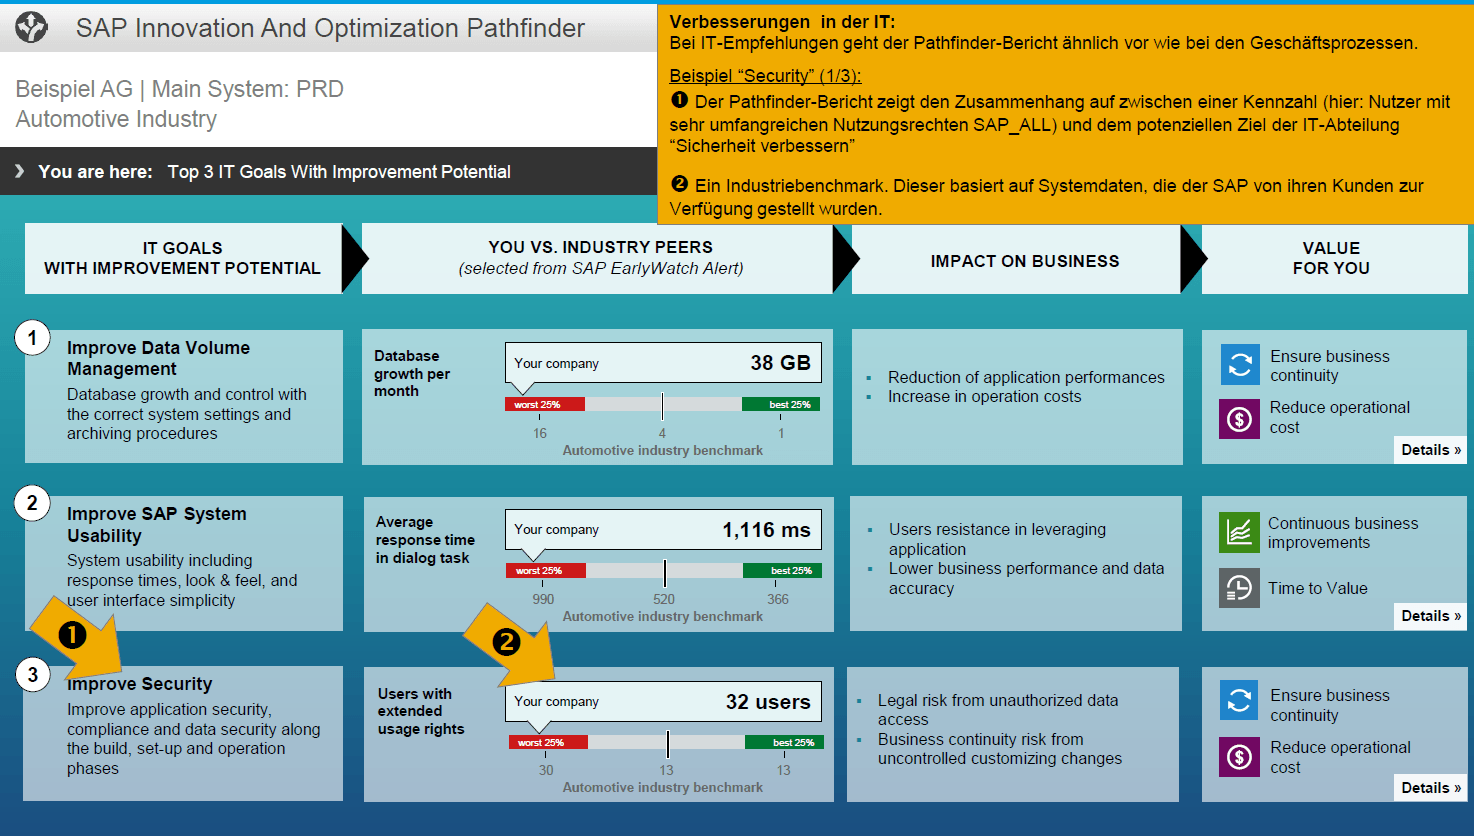 Blog_Screen_SAP Pathfinder_IT-Security 1